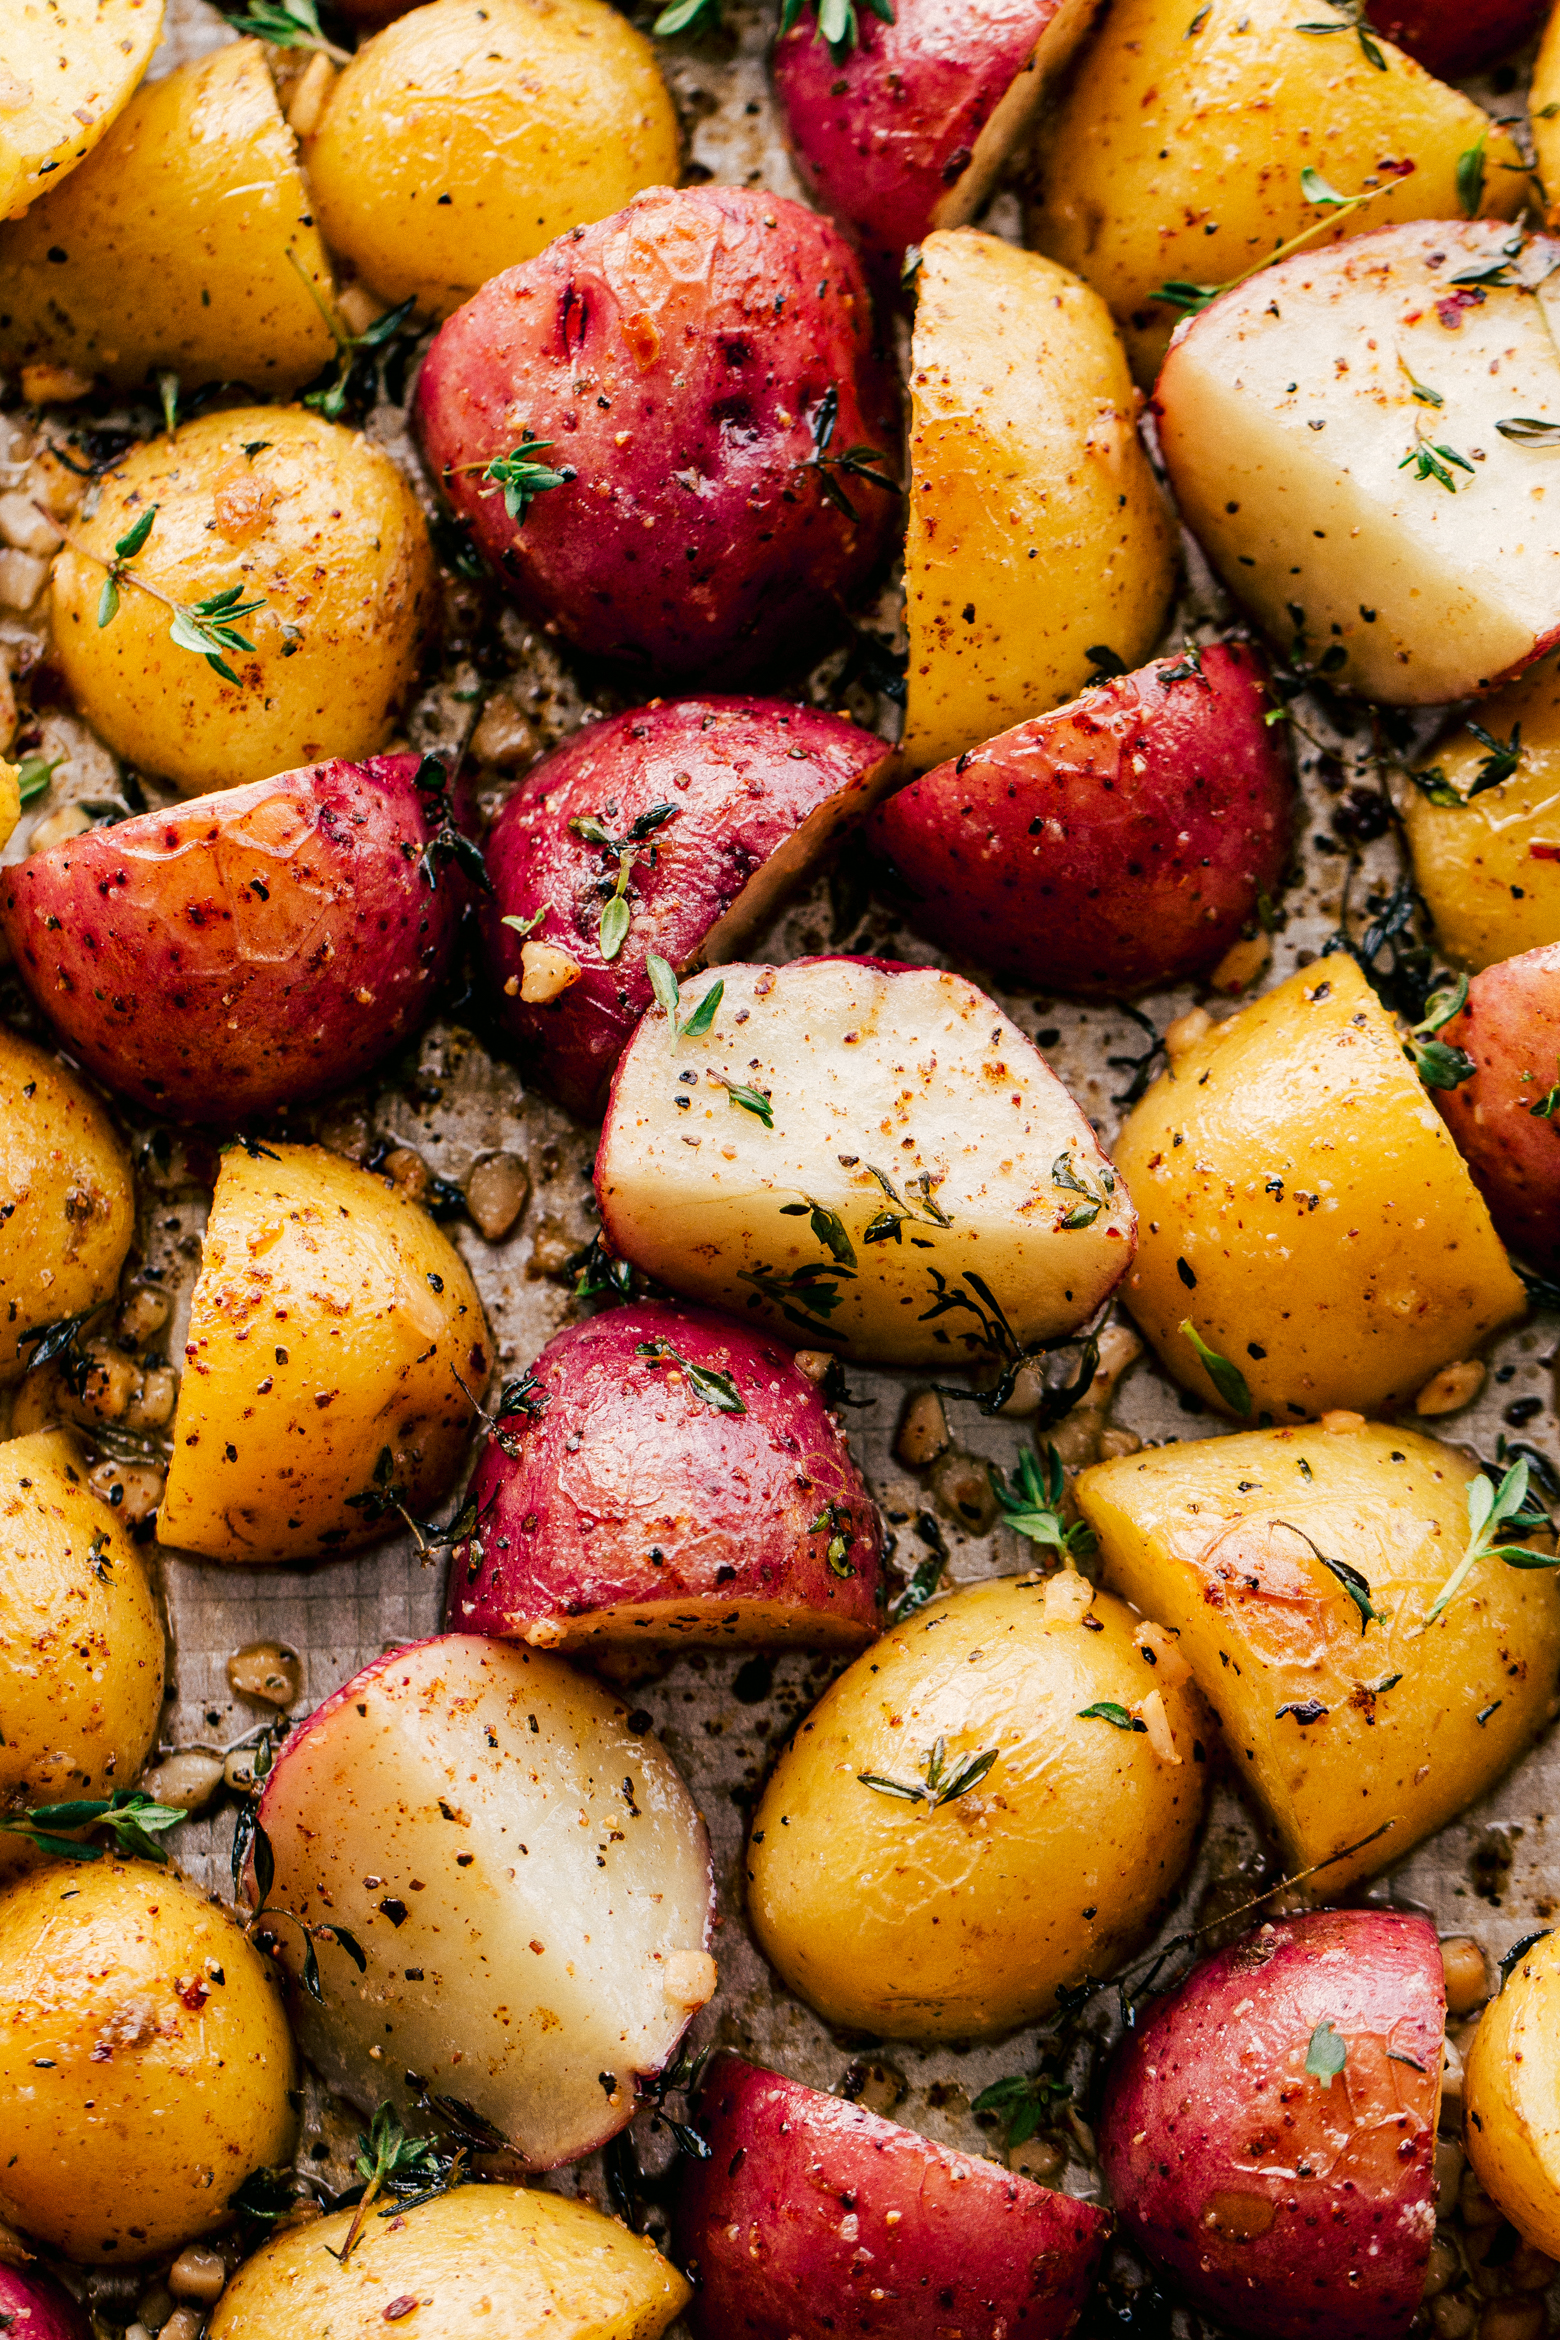 Roasted potatoes in garlic butter topped chopped rosemary by the food cafe.